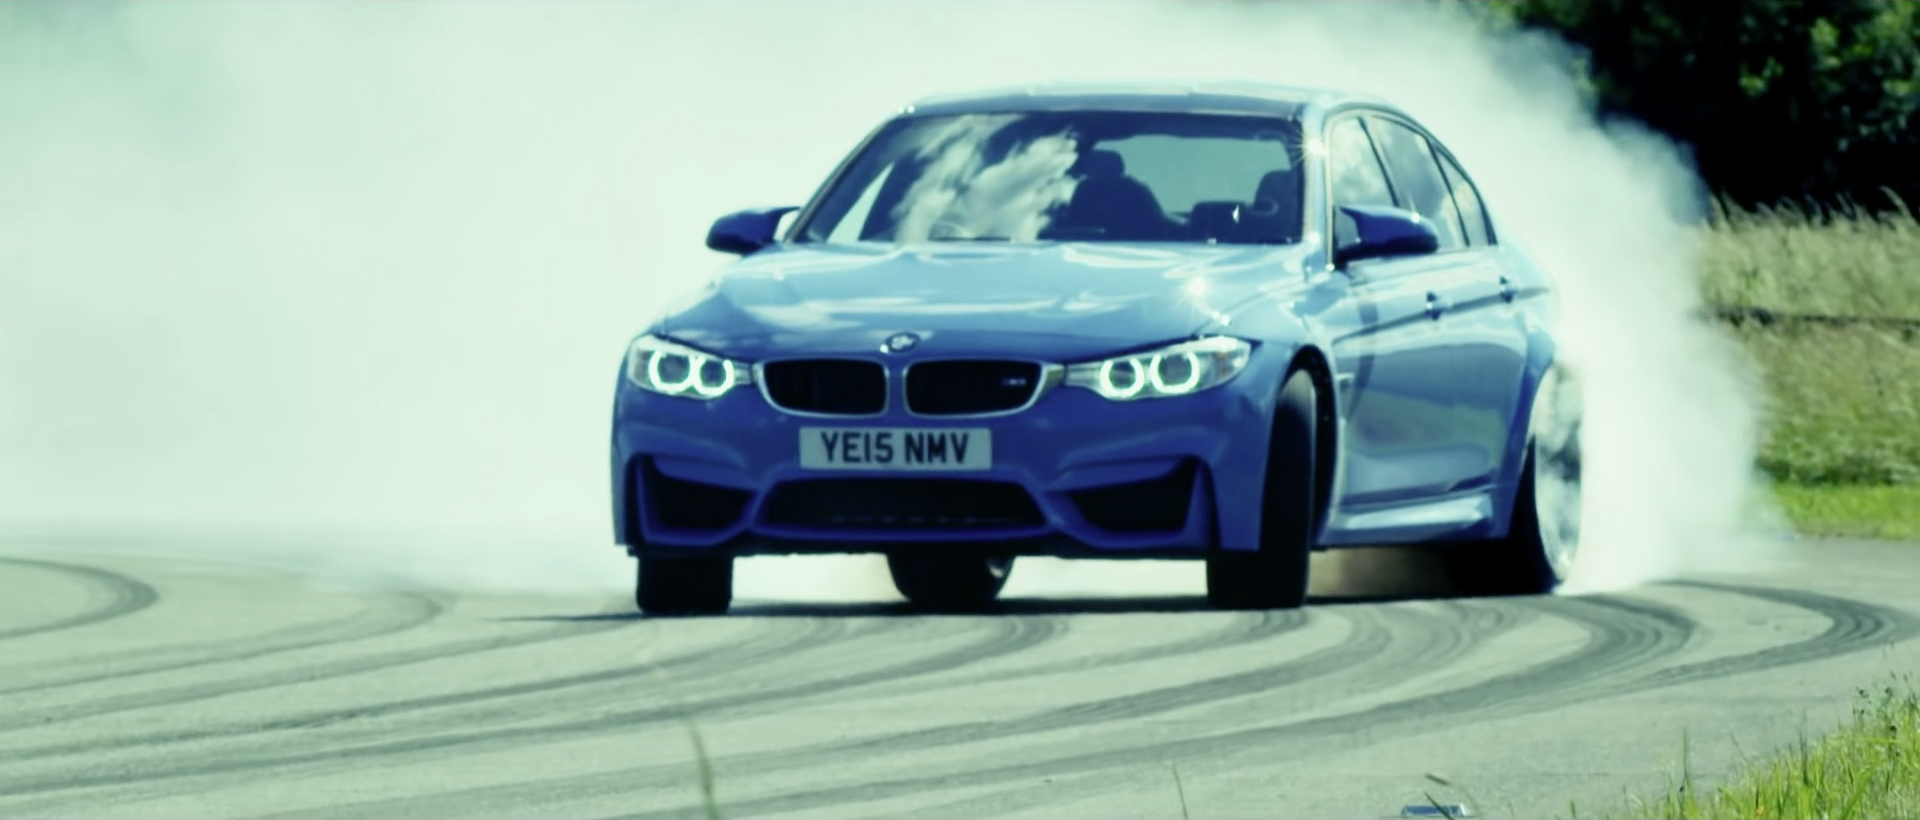 BMW M3 Owner Discovers That His Car Was 'Top Geared'